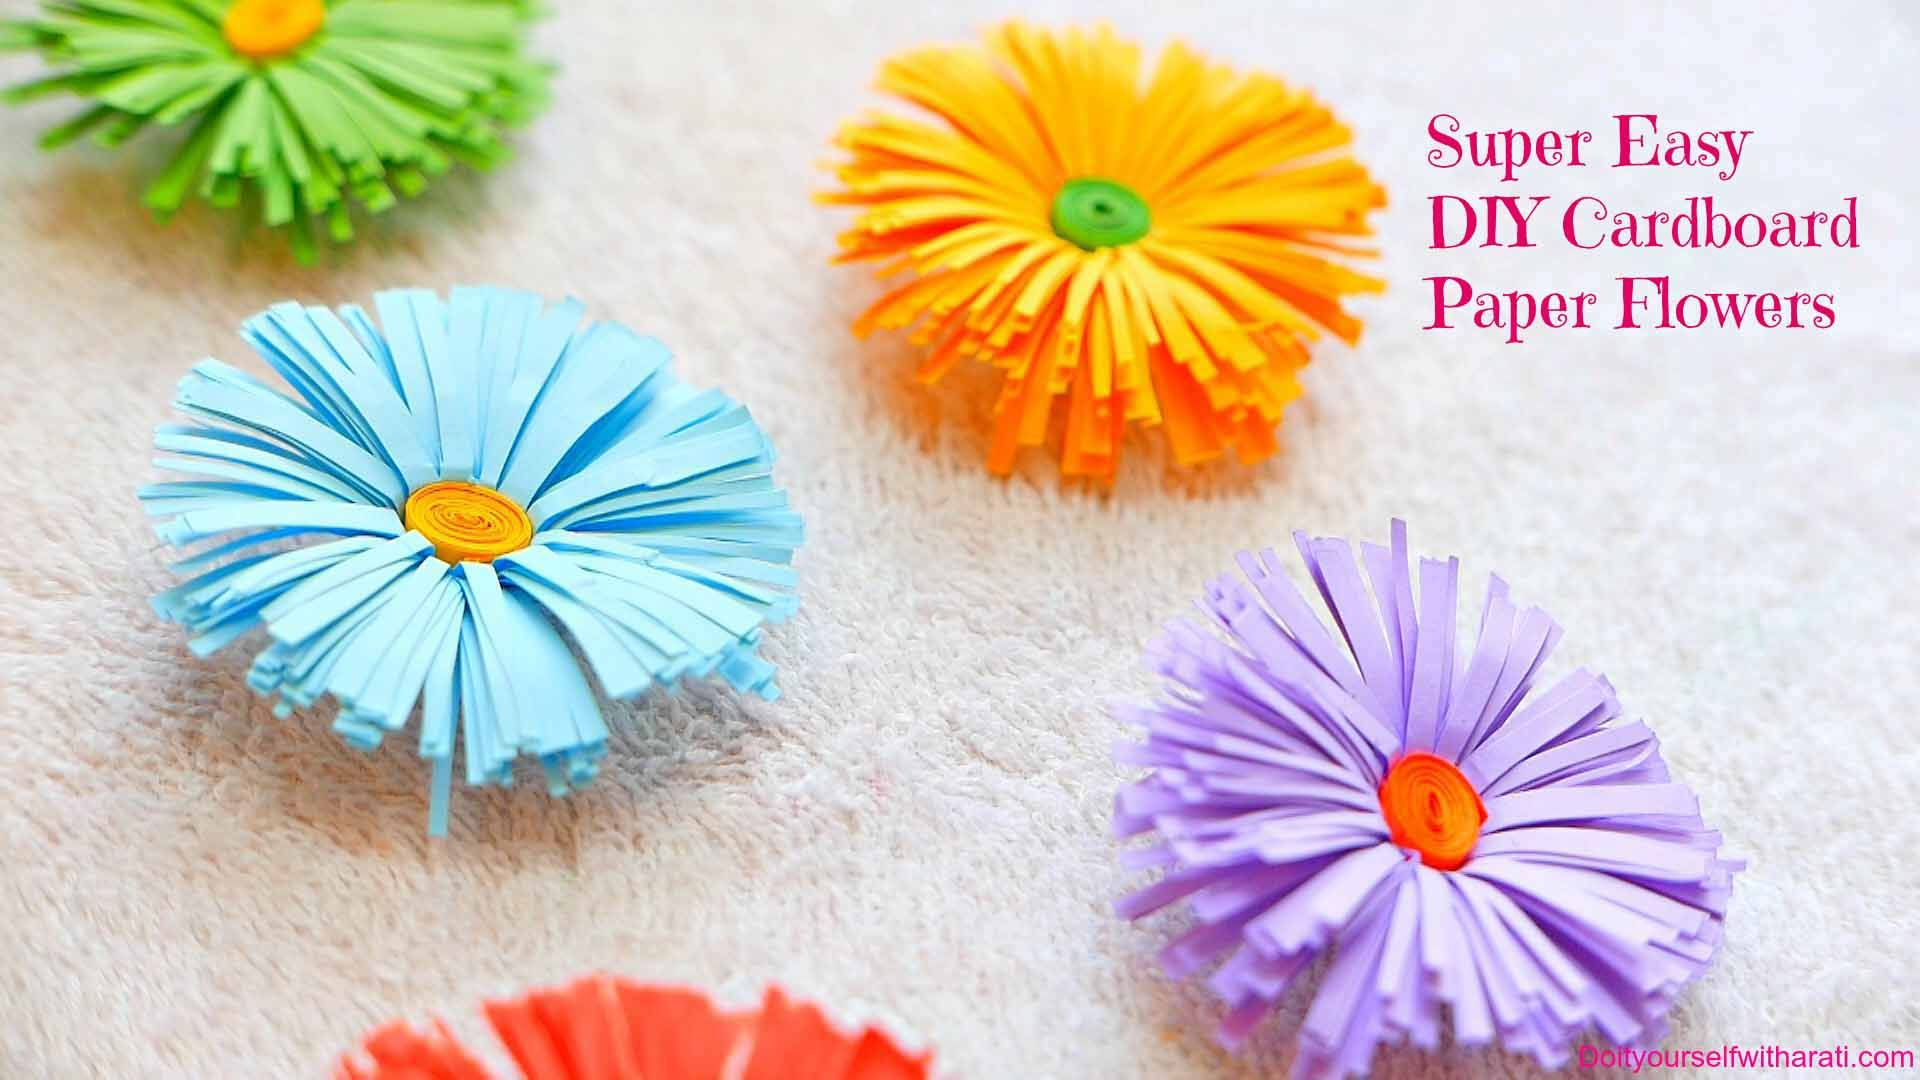 How To Make Handmade Flowers From Paper Today I Wanna Show You Guys How I Make These Diy Paper